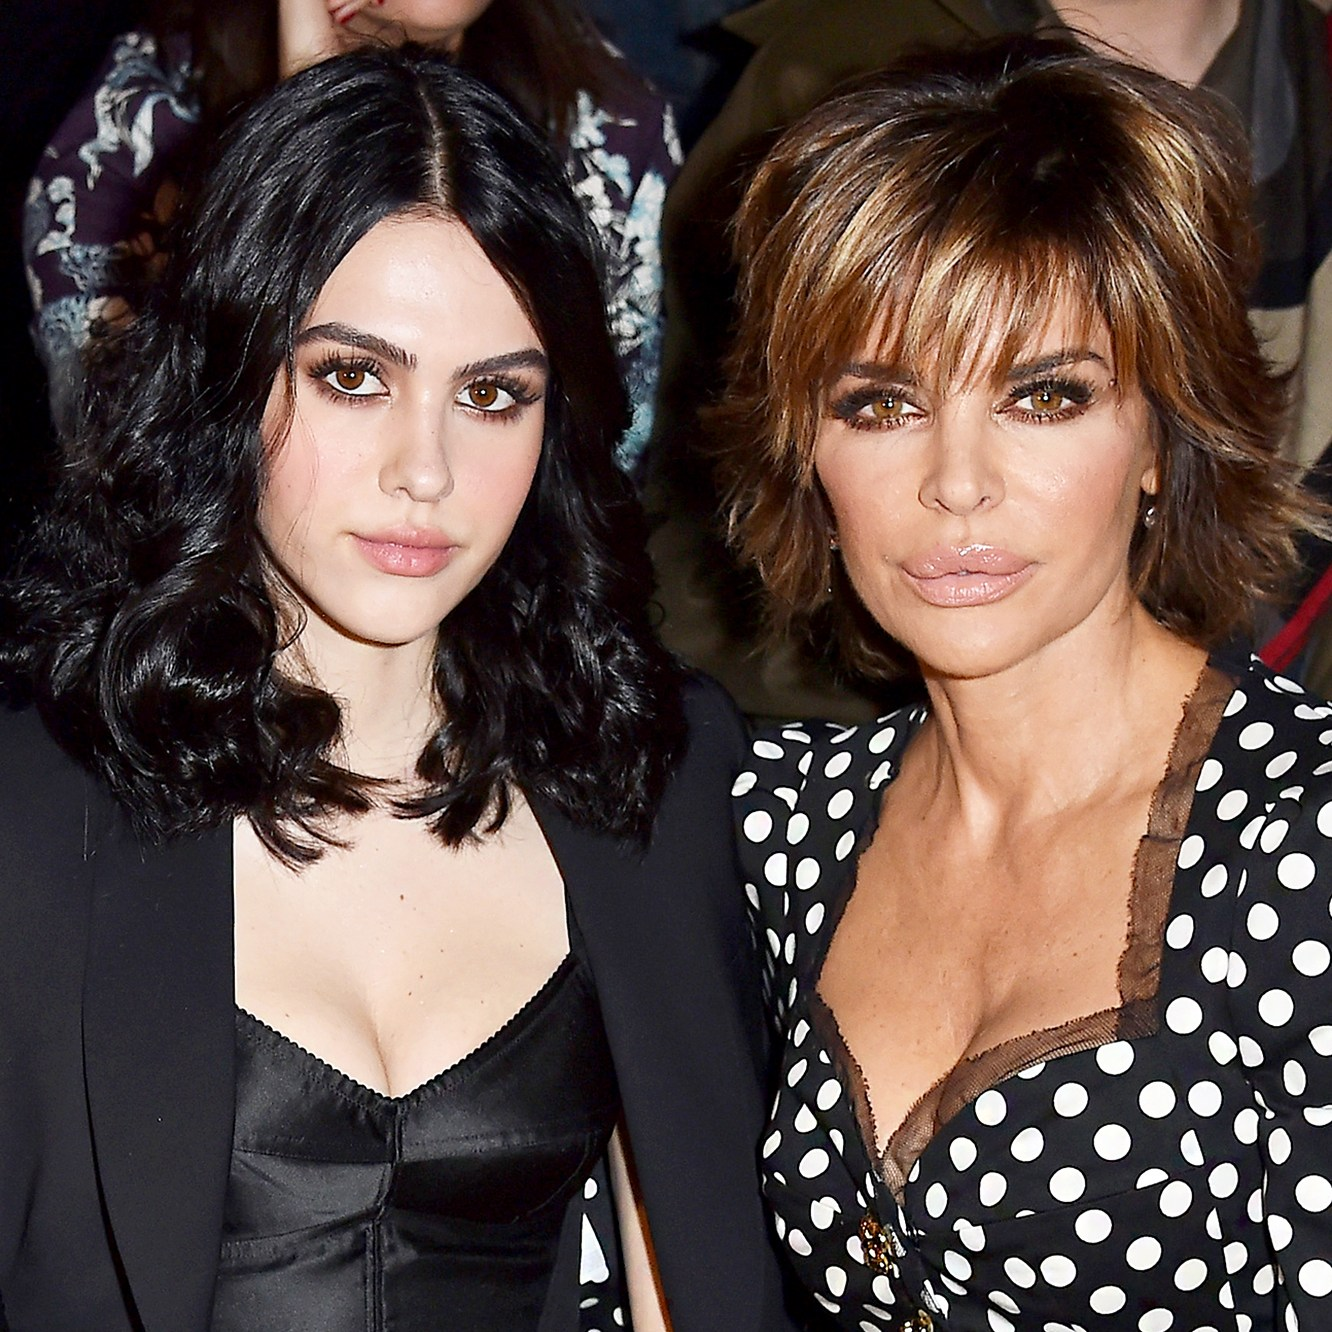 Amelia Gray Hamlin and Lisa Rinna attend the Dolce & Gabbana show during Milan Fashion Week Fall/Winter 2017/18 in Milan, Italy.